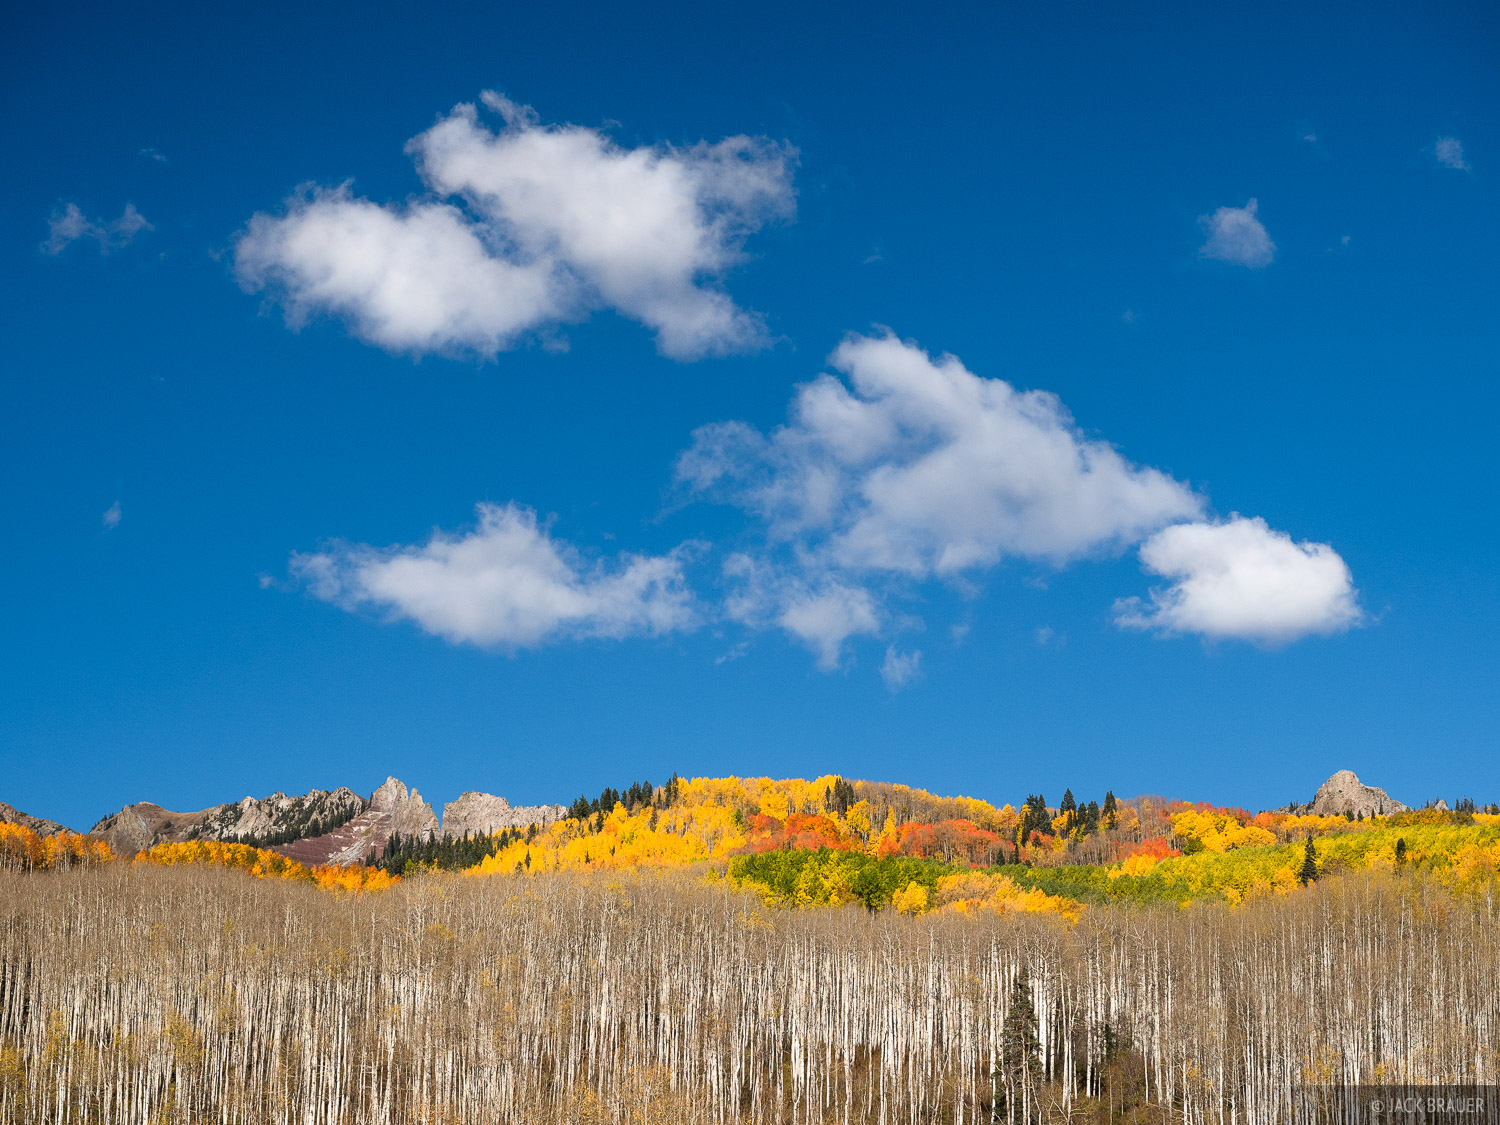 Colorful aspens and a blue sky at Kebler Pass.